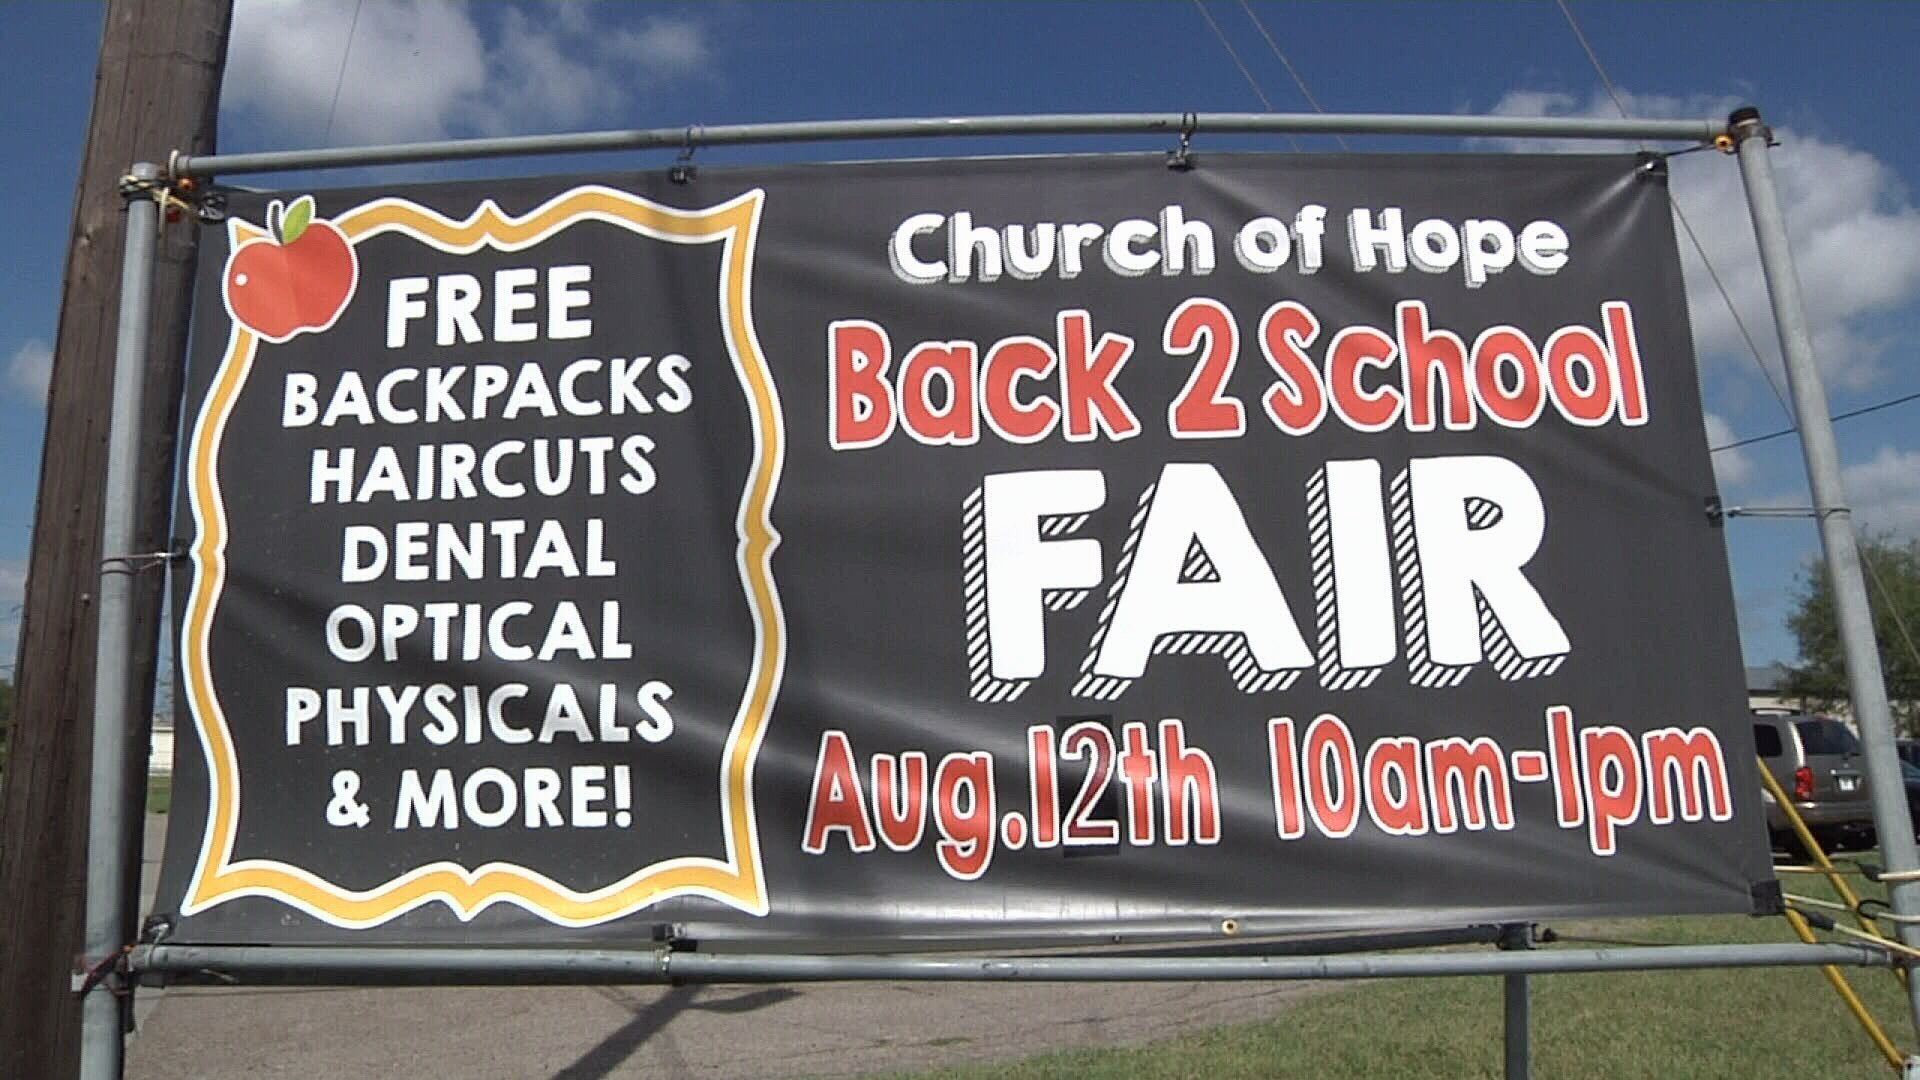 Church of Hope hosted the Back to School Fair, aiming to take some stress off local parents.